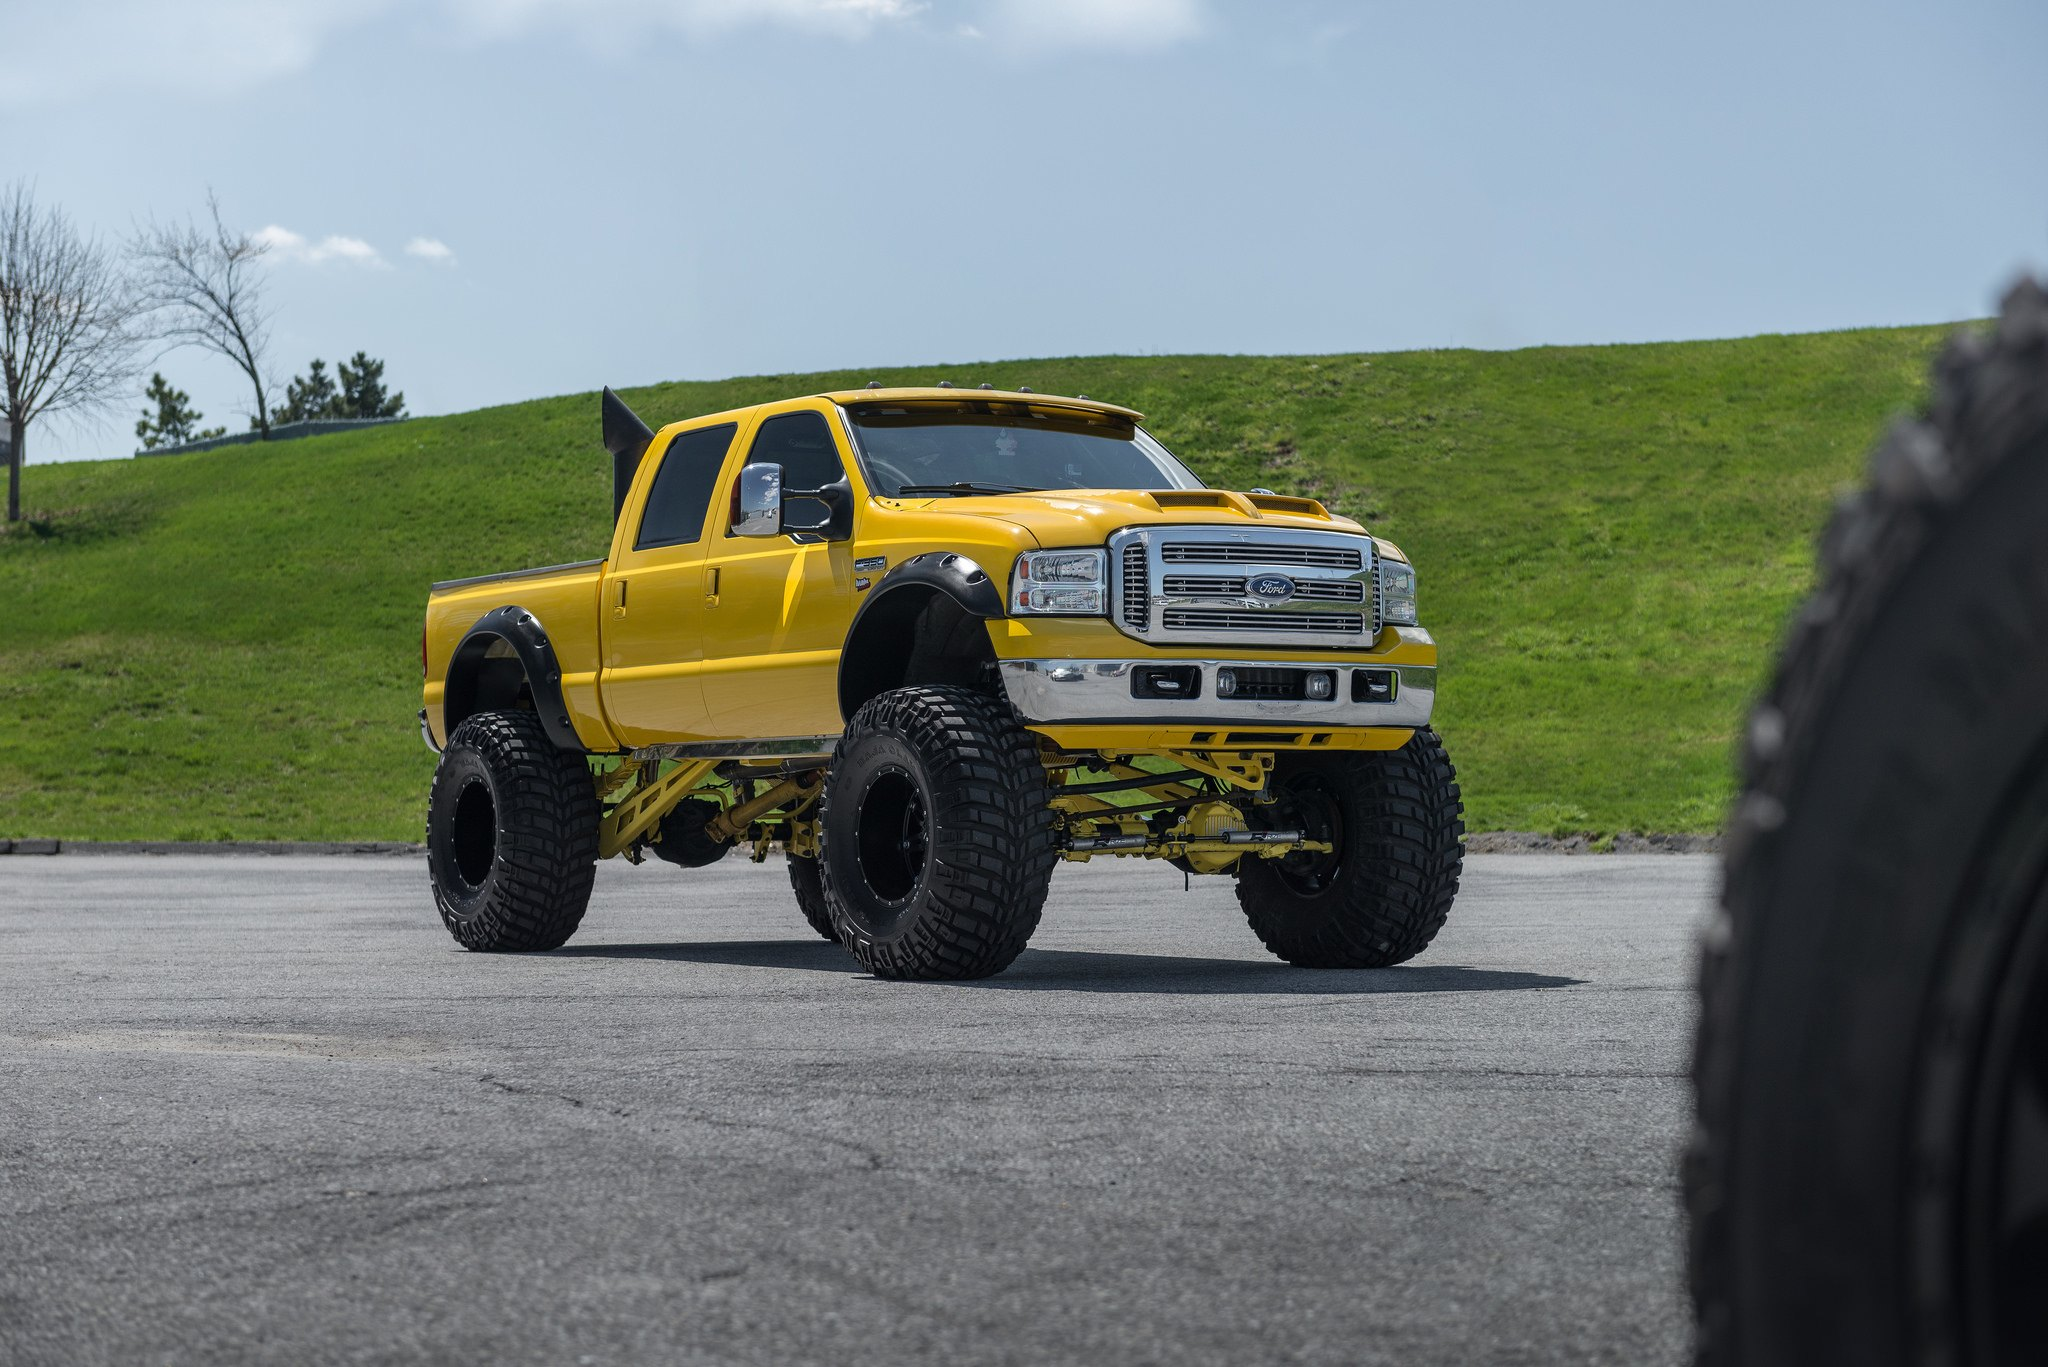 Insane Monster Truck Yellow Ford F 250 Super Duty On Huge Wheels Lifted Trucks Custom Photo By Fuel Offroad